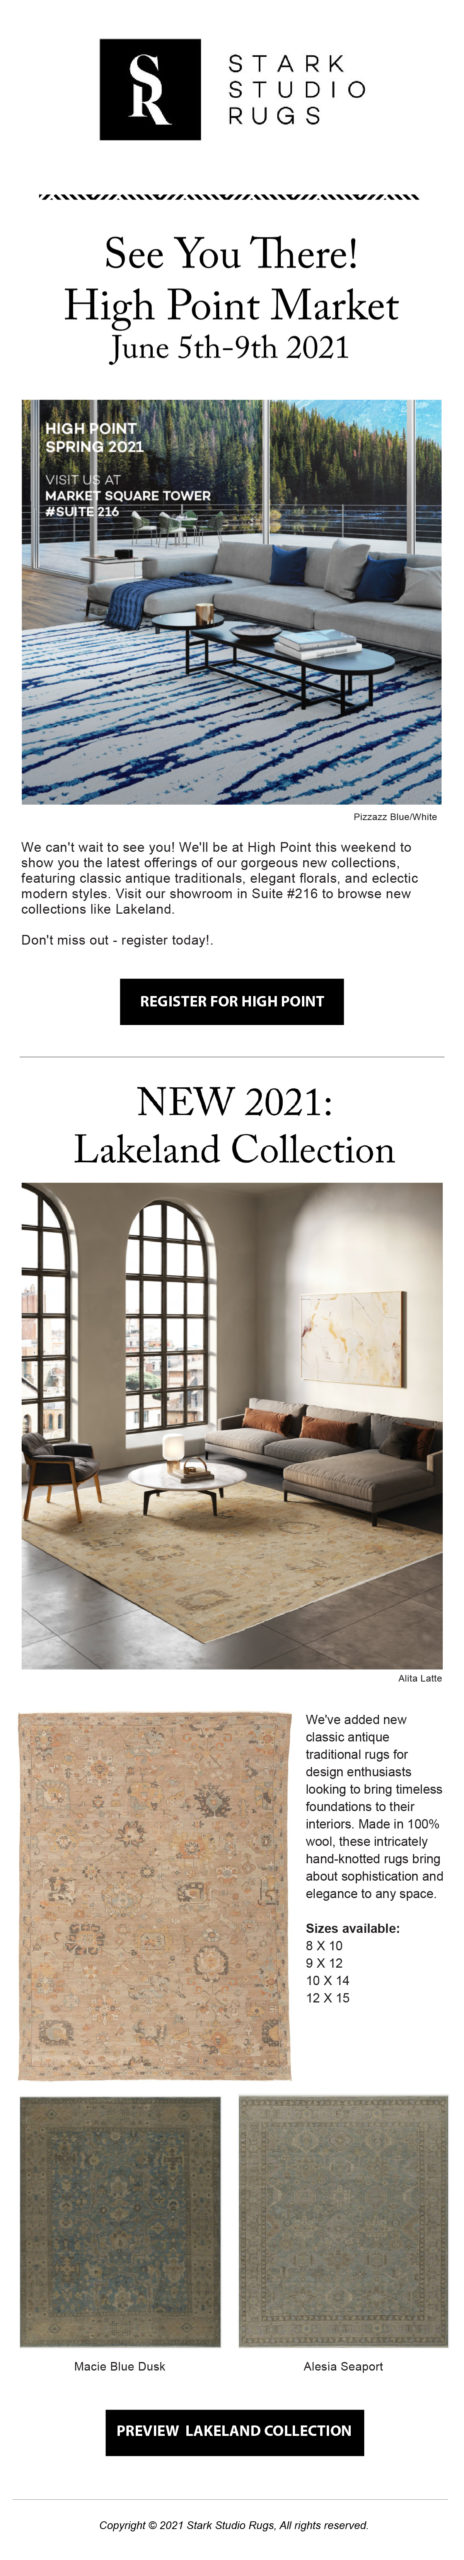 Stark Studio Rugs at High Point-2021